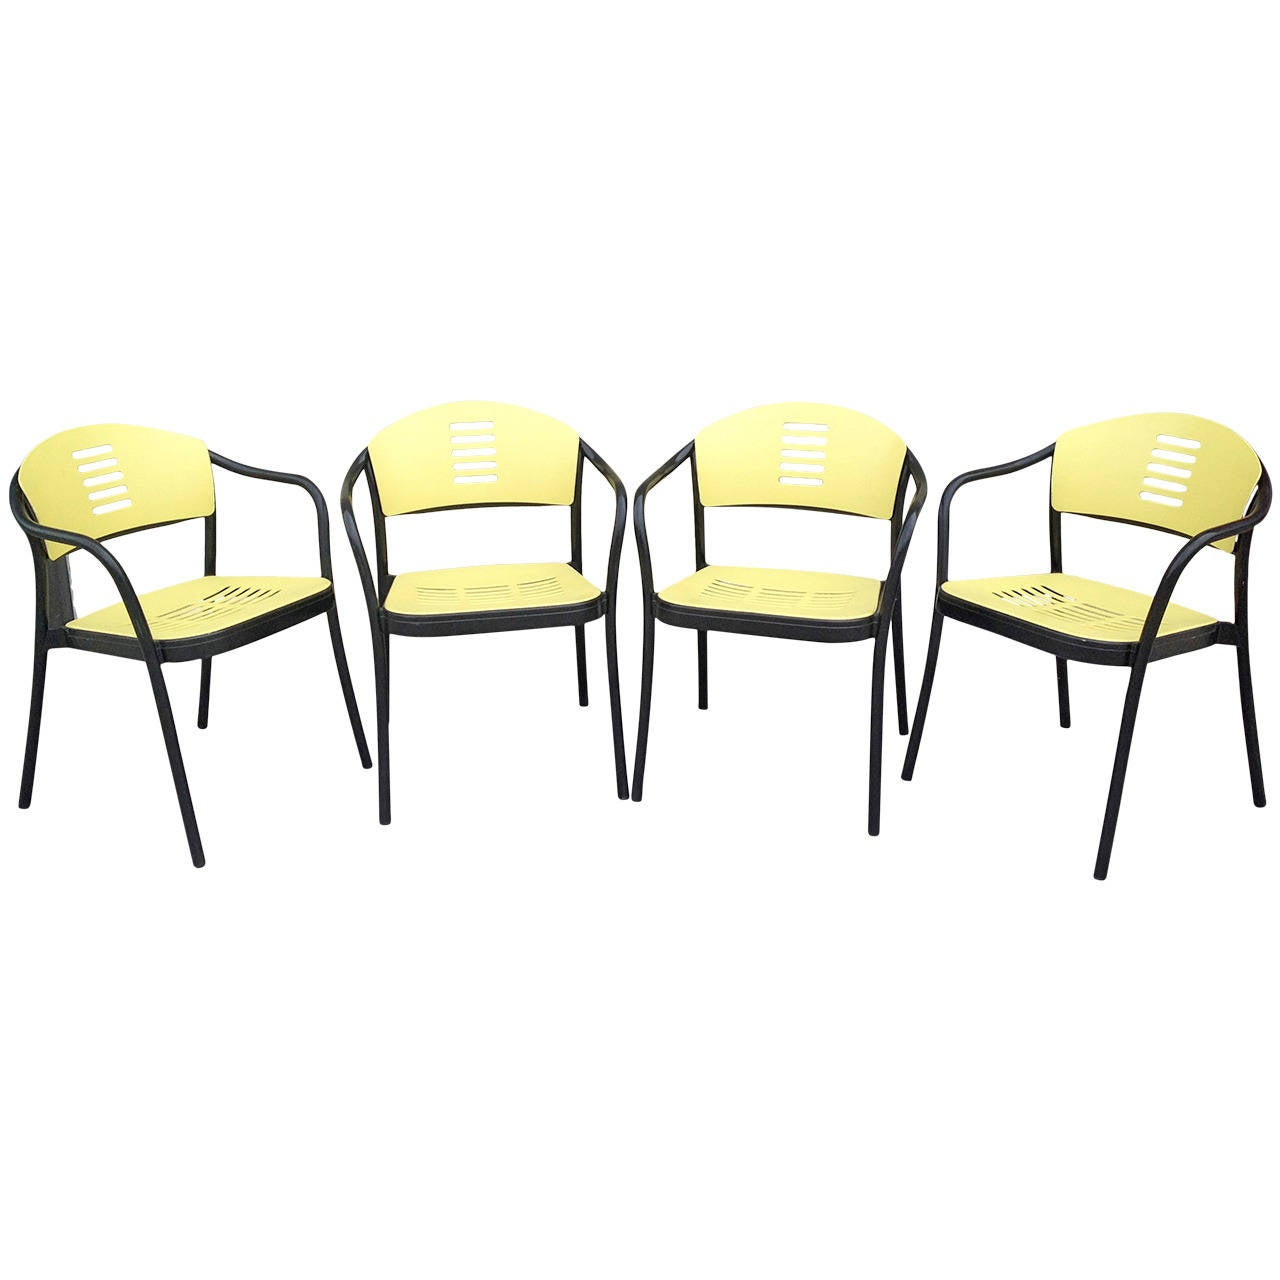 Set Of Mauna Kea Outdoor Chairs By Vico Magistretti For Kartell For Sale